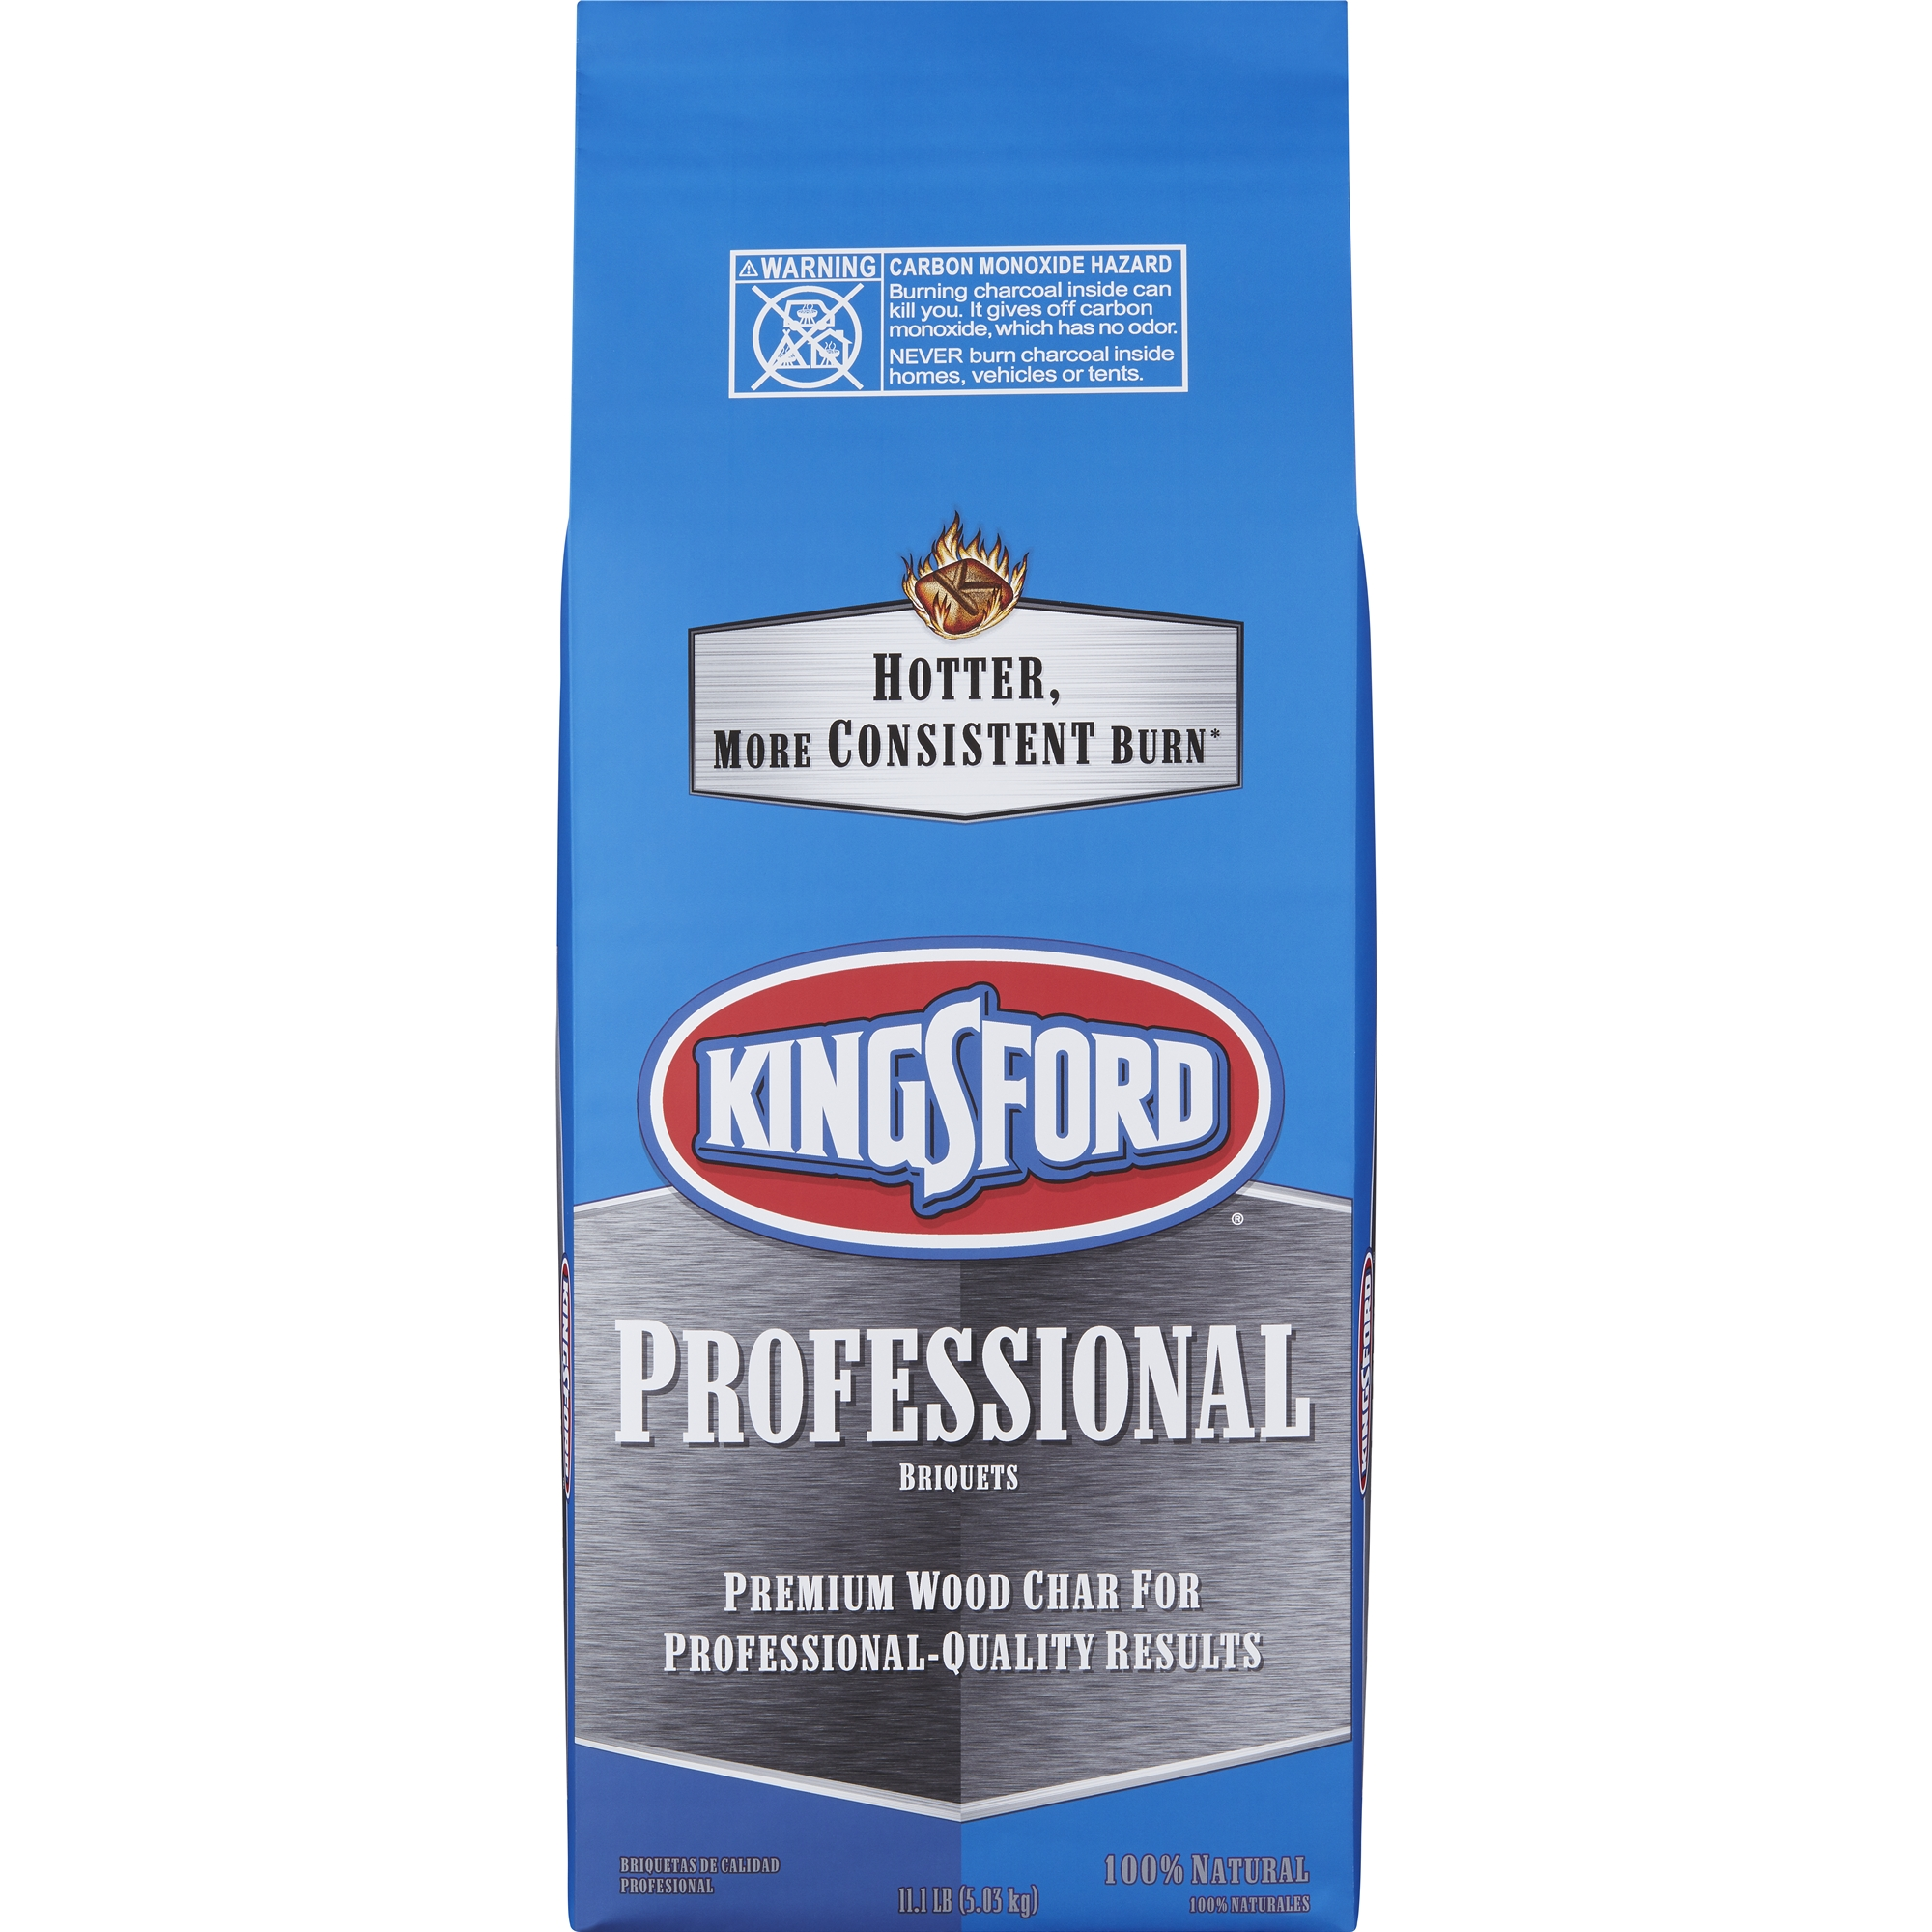 Kingsford Charcoal Professional Briquettes, 11.1 Pounds